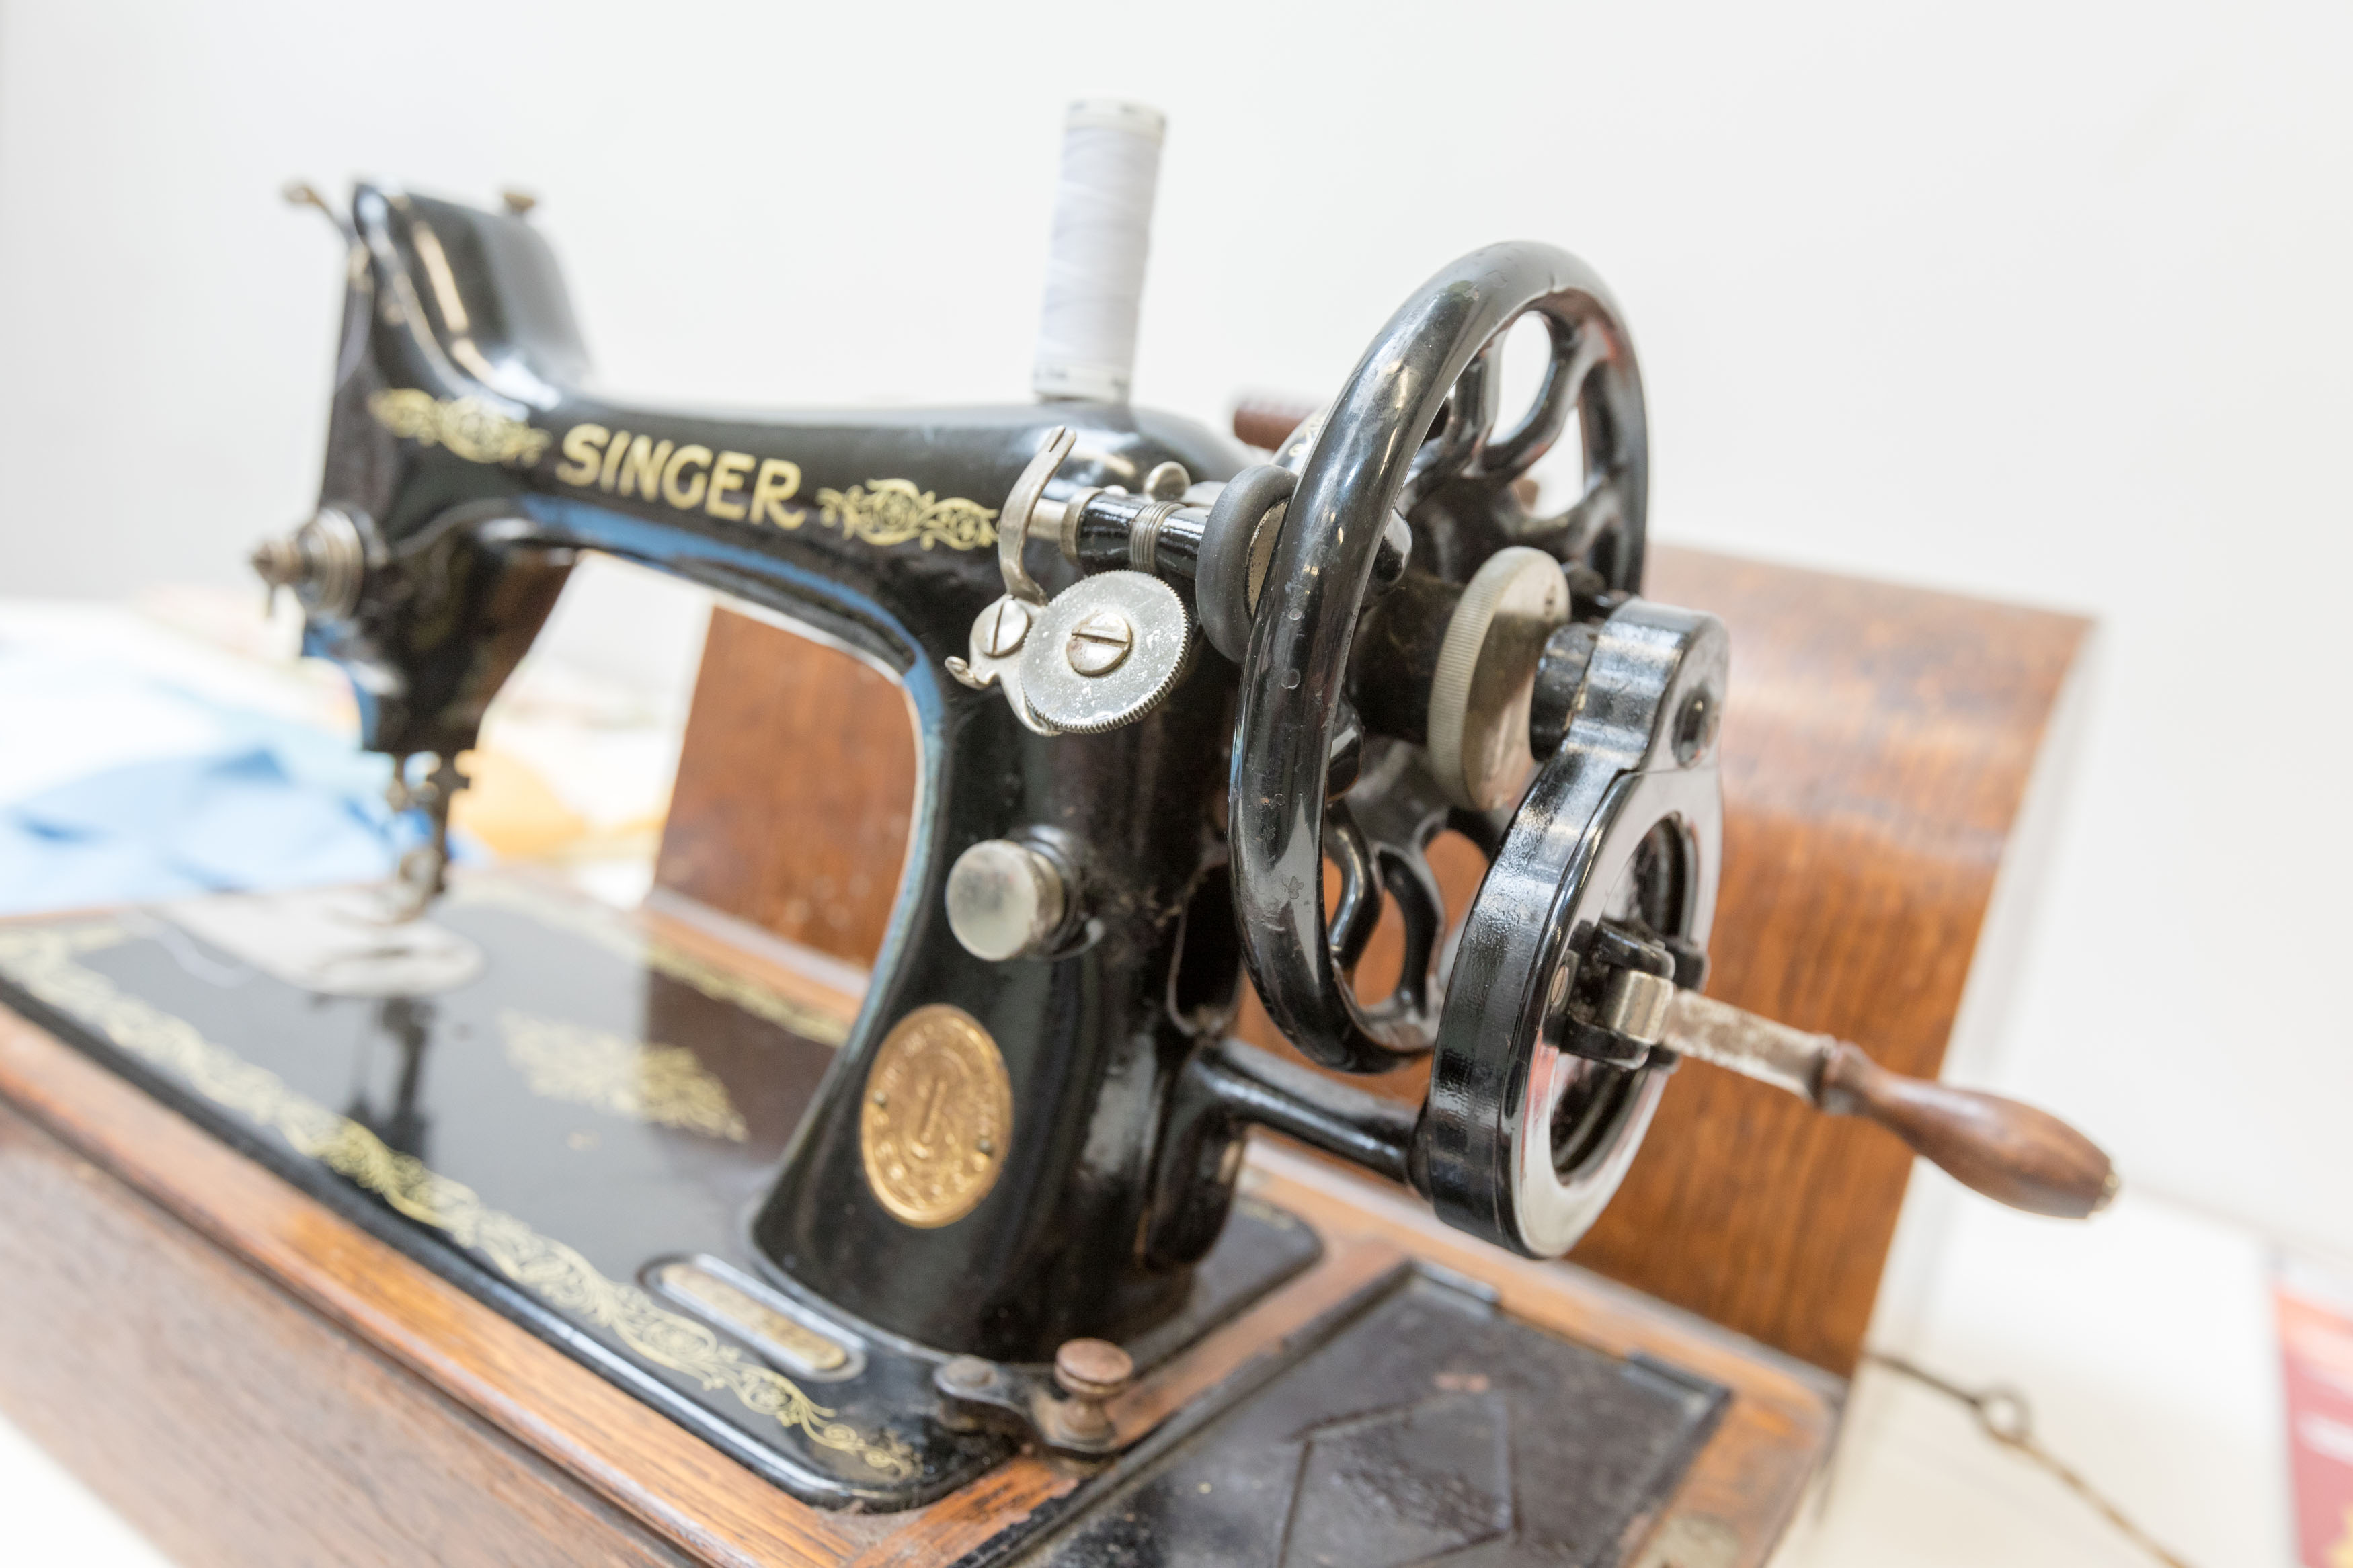 cast iron sewing machine in an iconic Singer design with flakes of nickel on the exterior